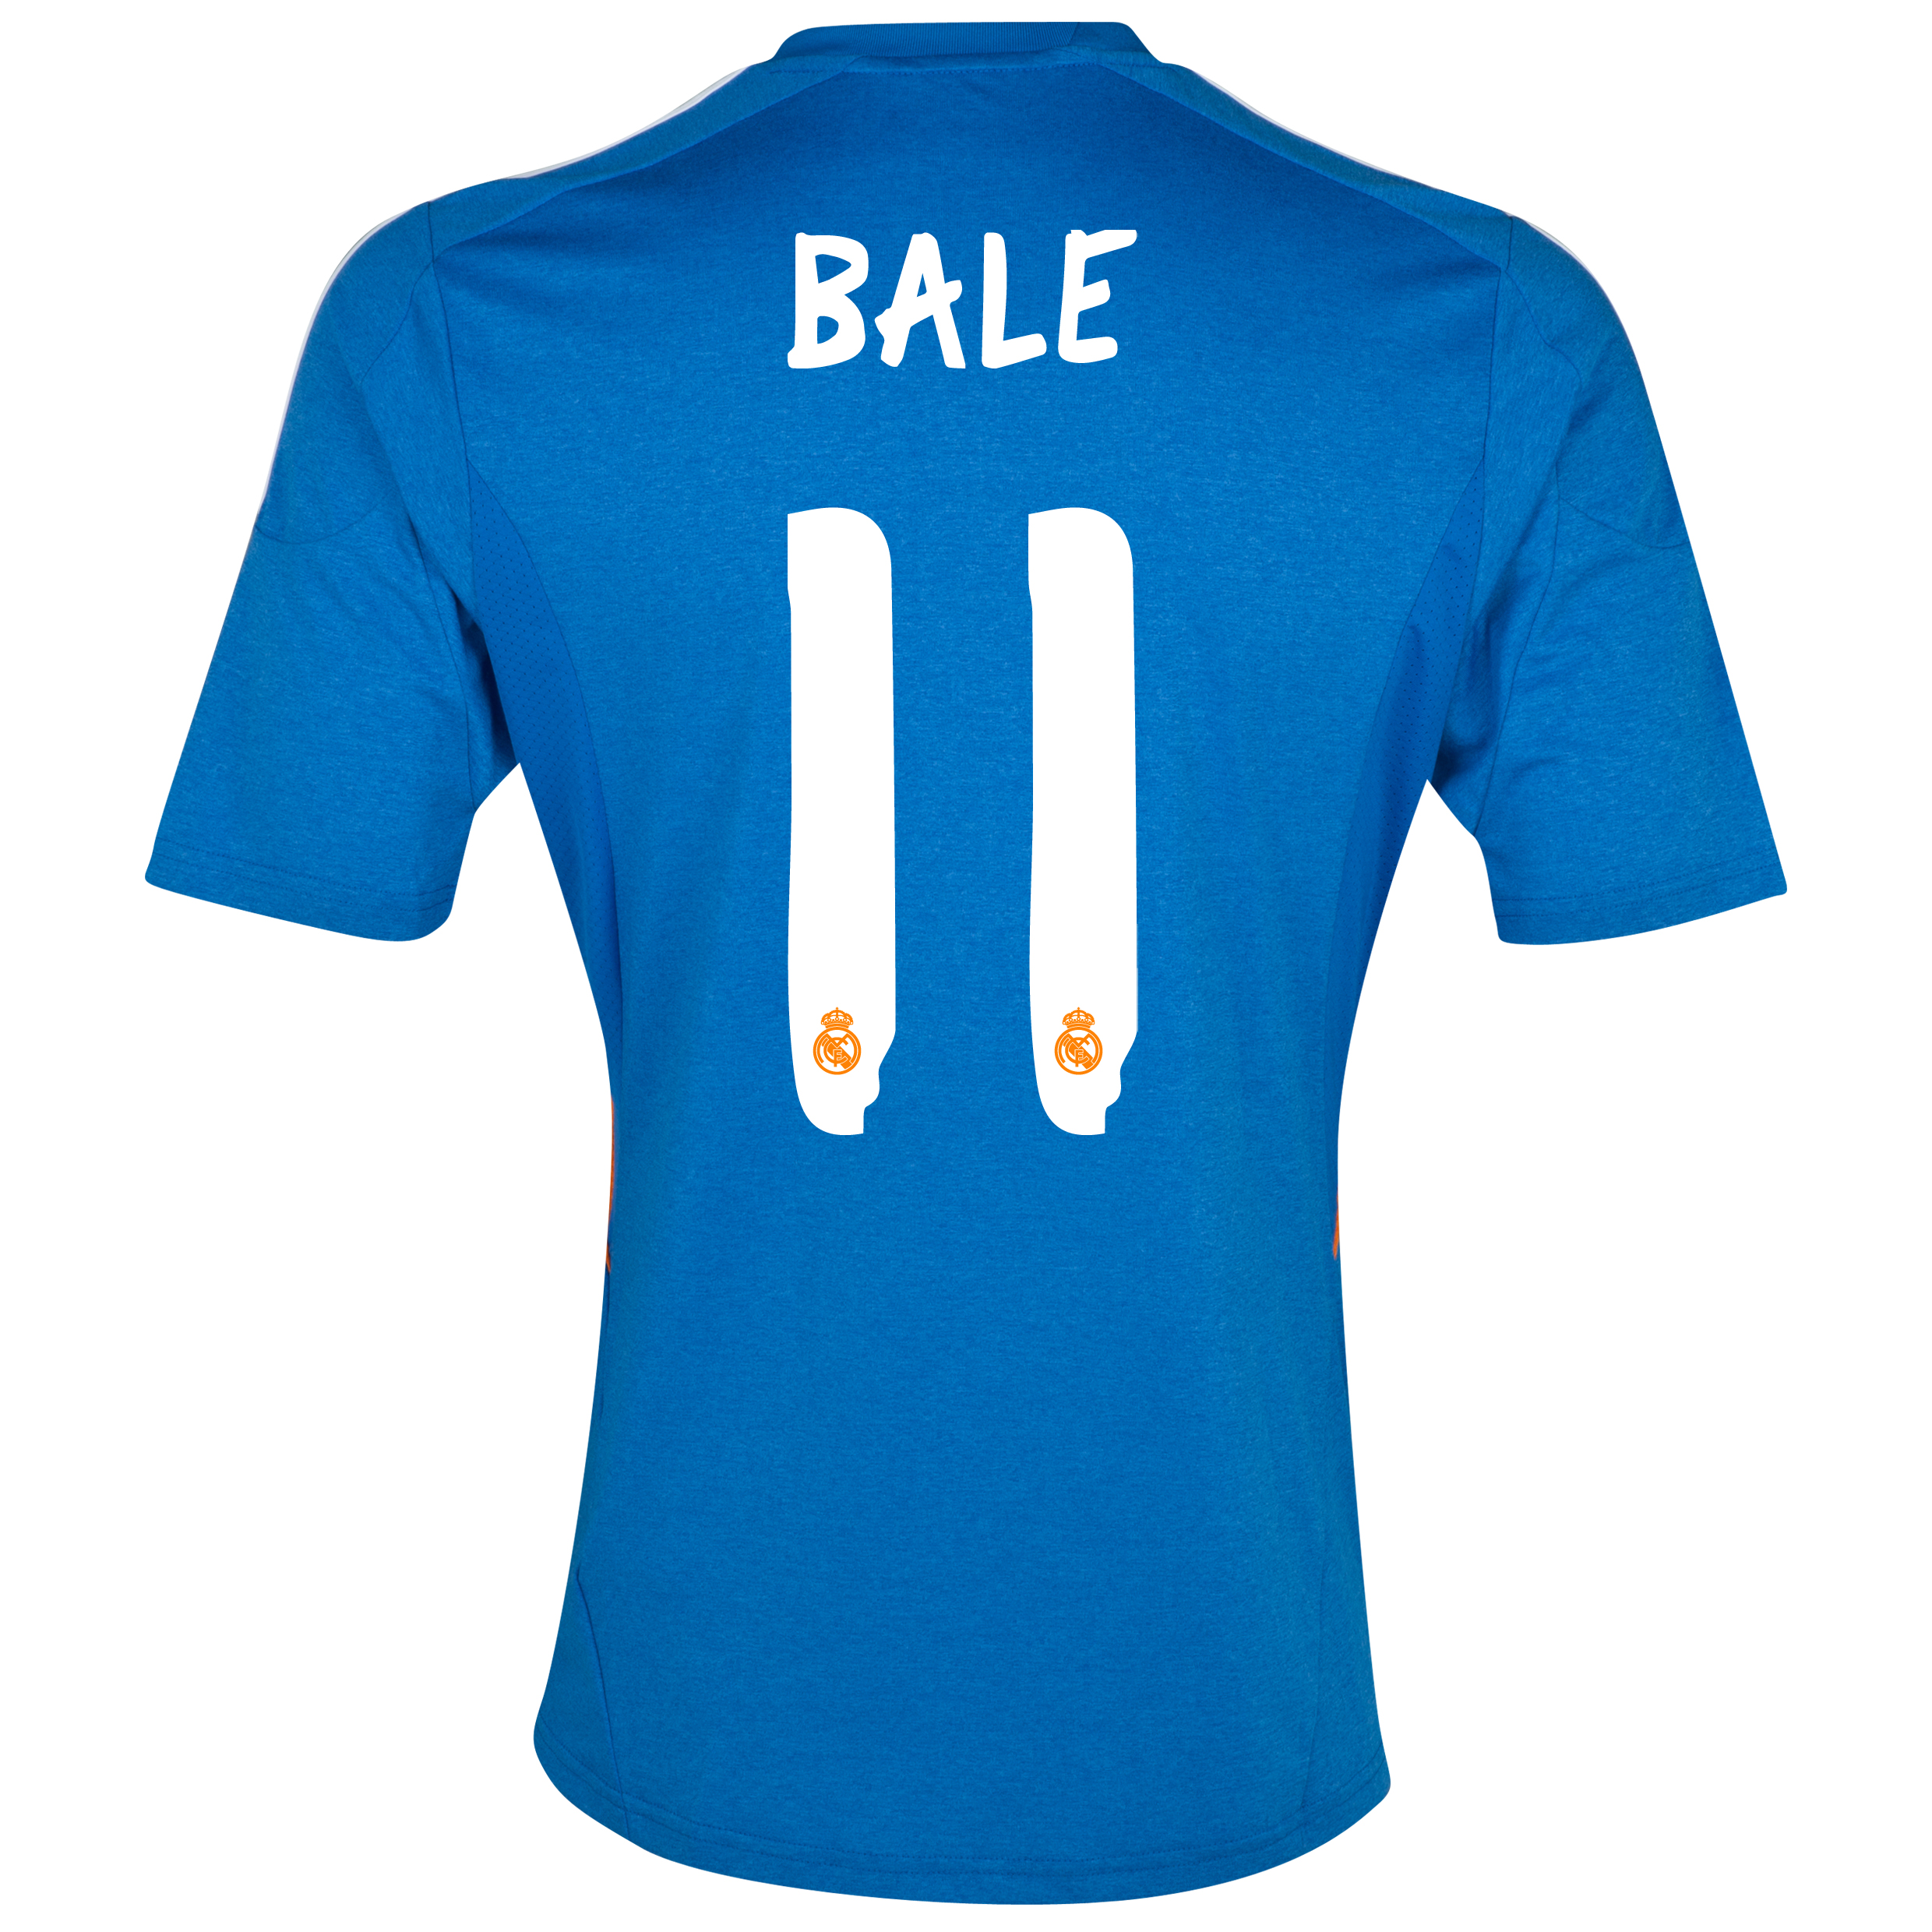 Real Madrid Away Shirt 2013/14 with Bale 11 printing